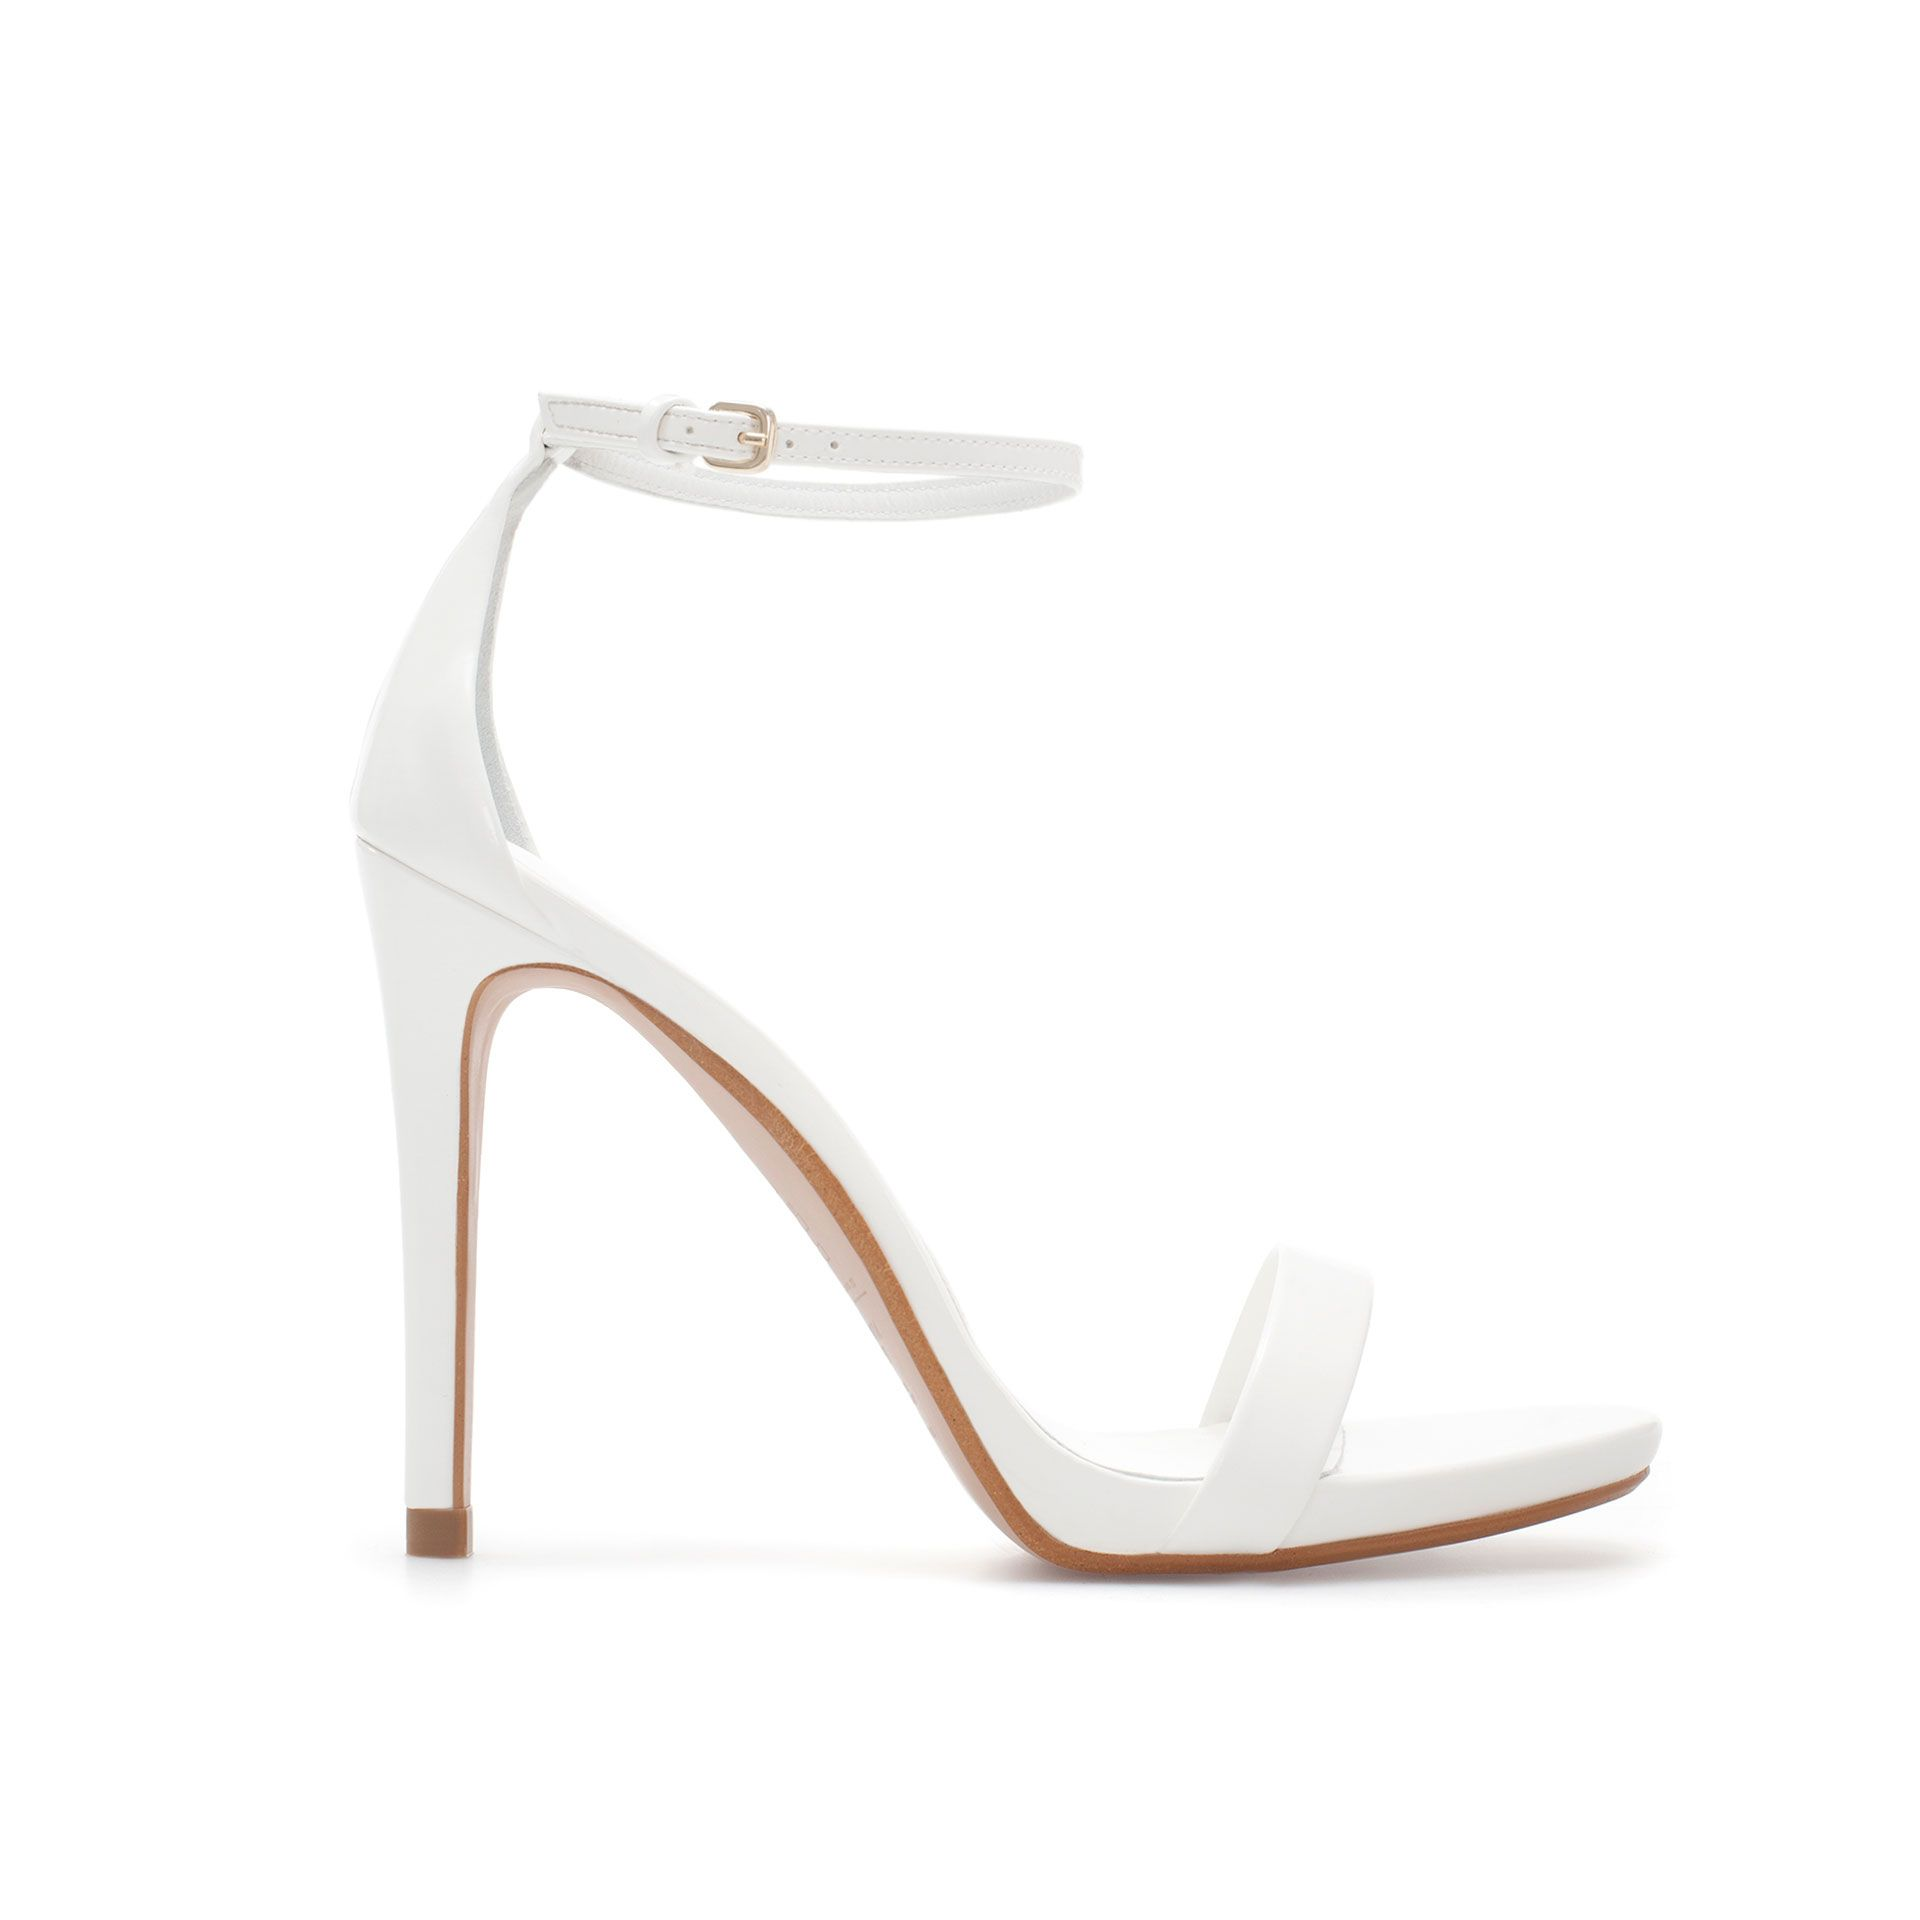 If I wasn't 5.9 | White strappy high heels, Strap sandals